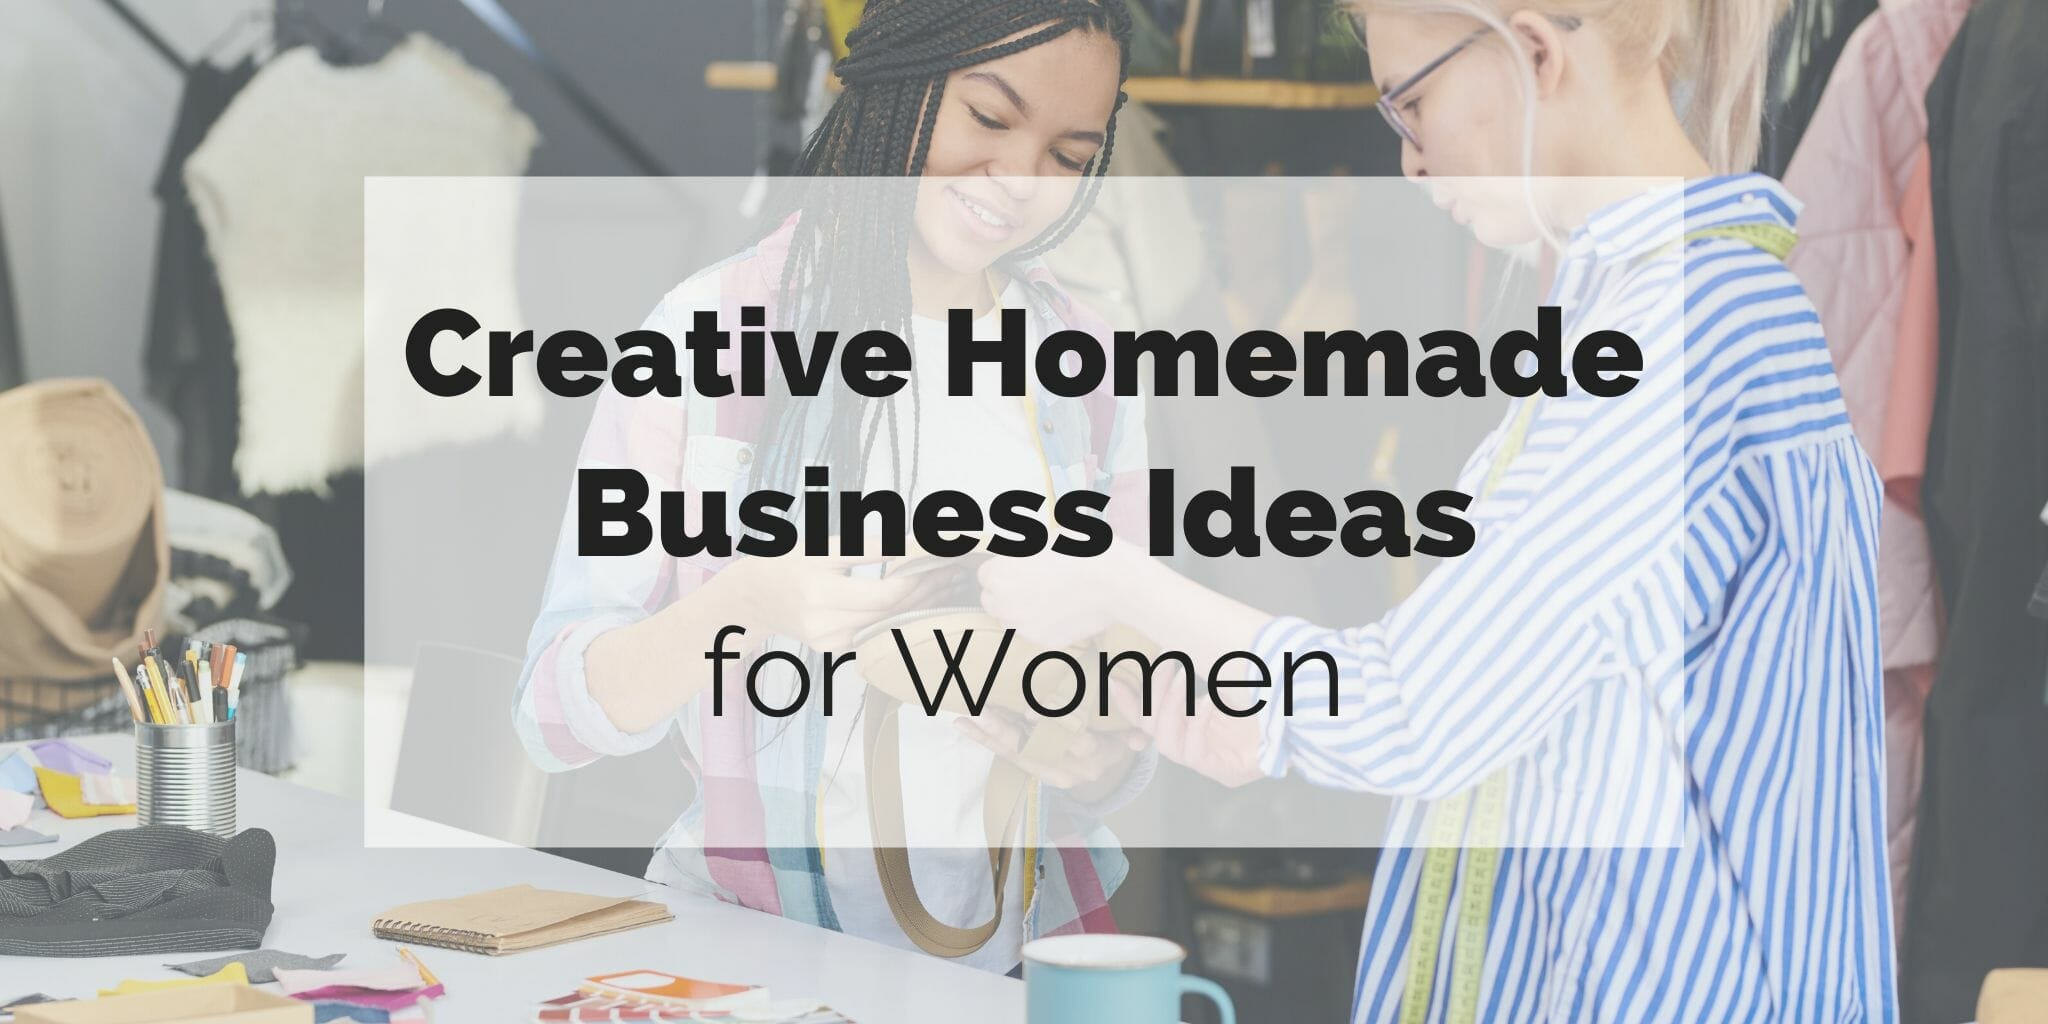 two women designing a bag for their homemade business